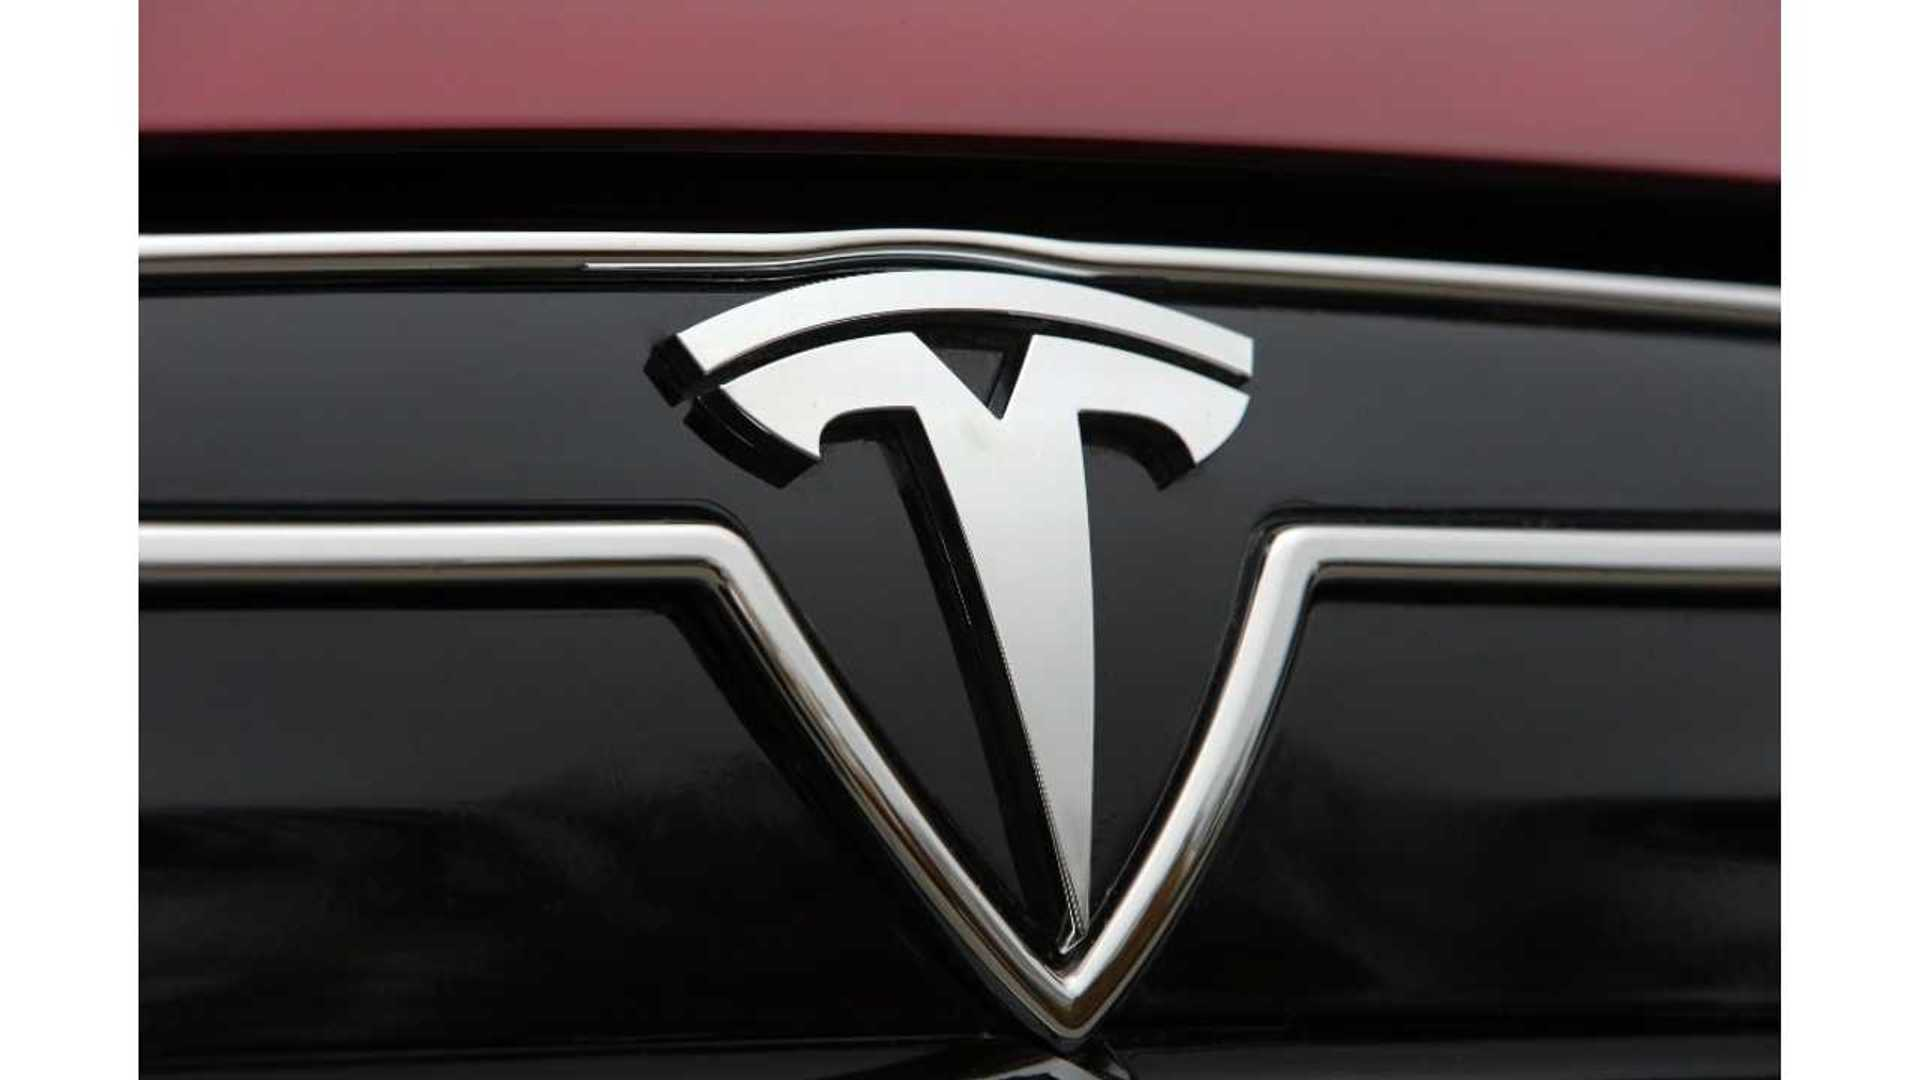 Tesloop CEO Chimes In On Tesla Cybertruck: More Crazy Predictions